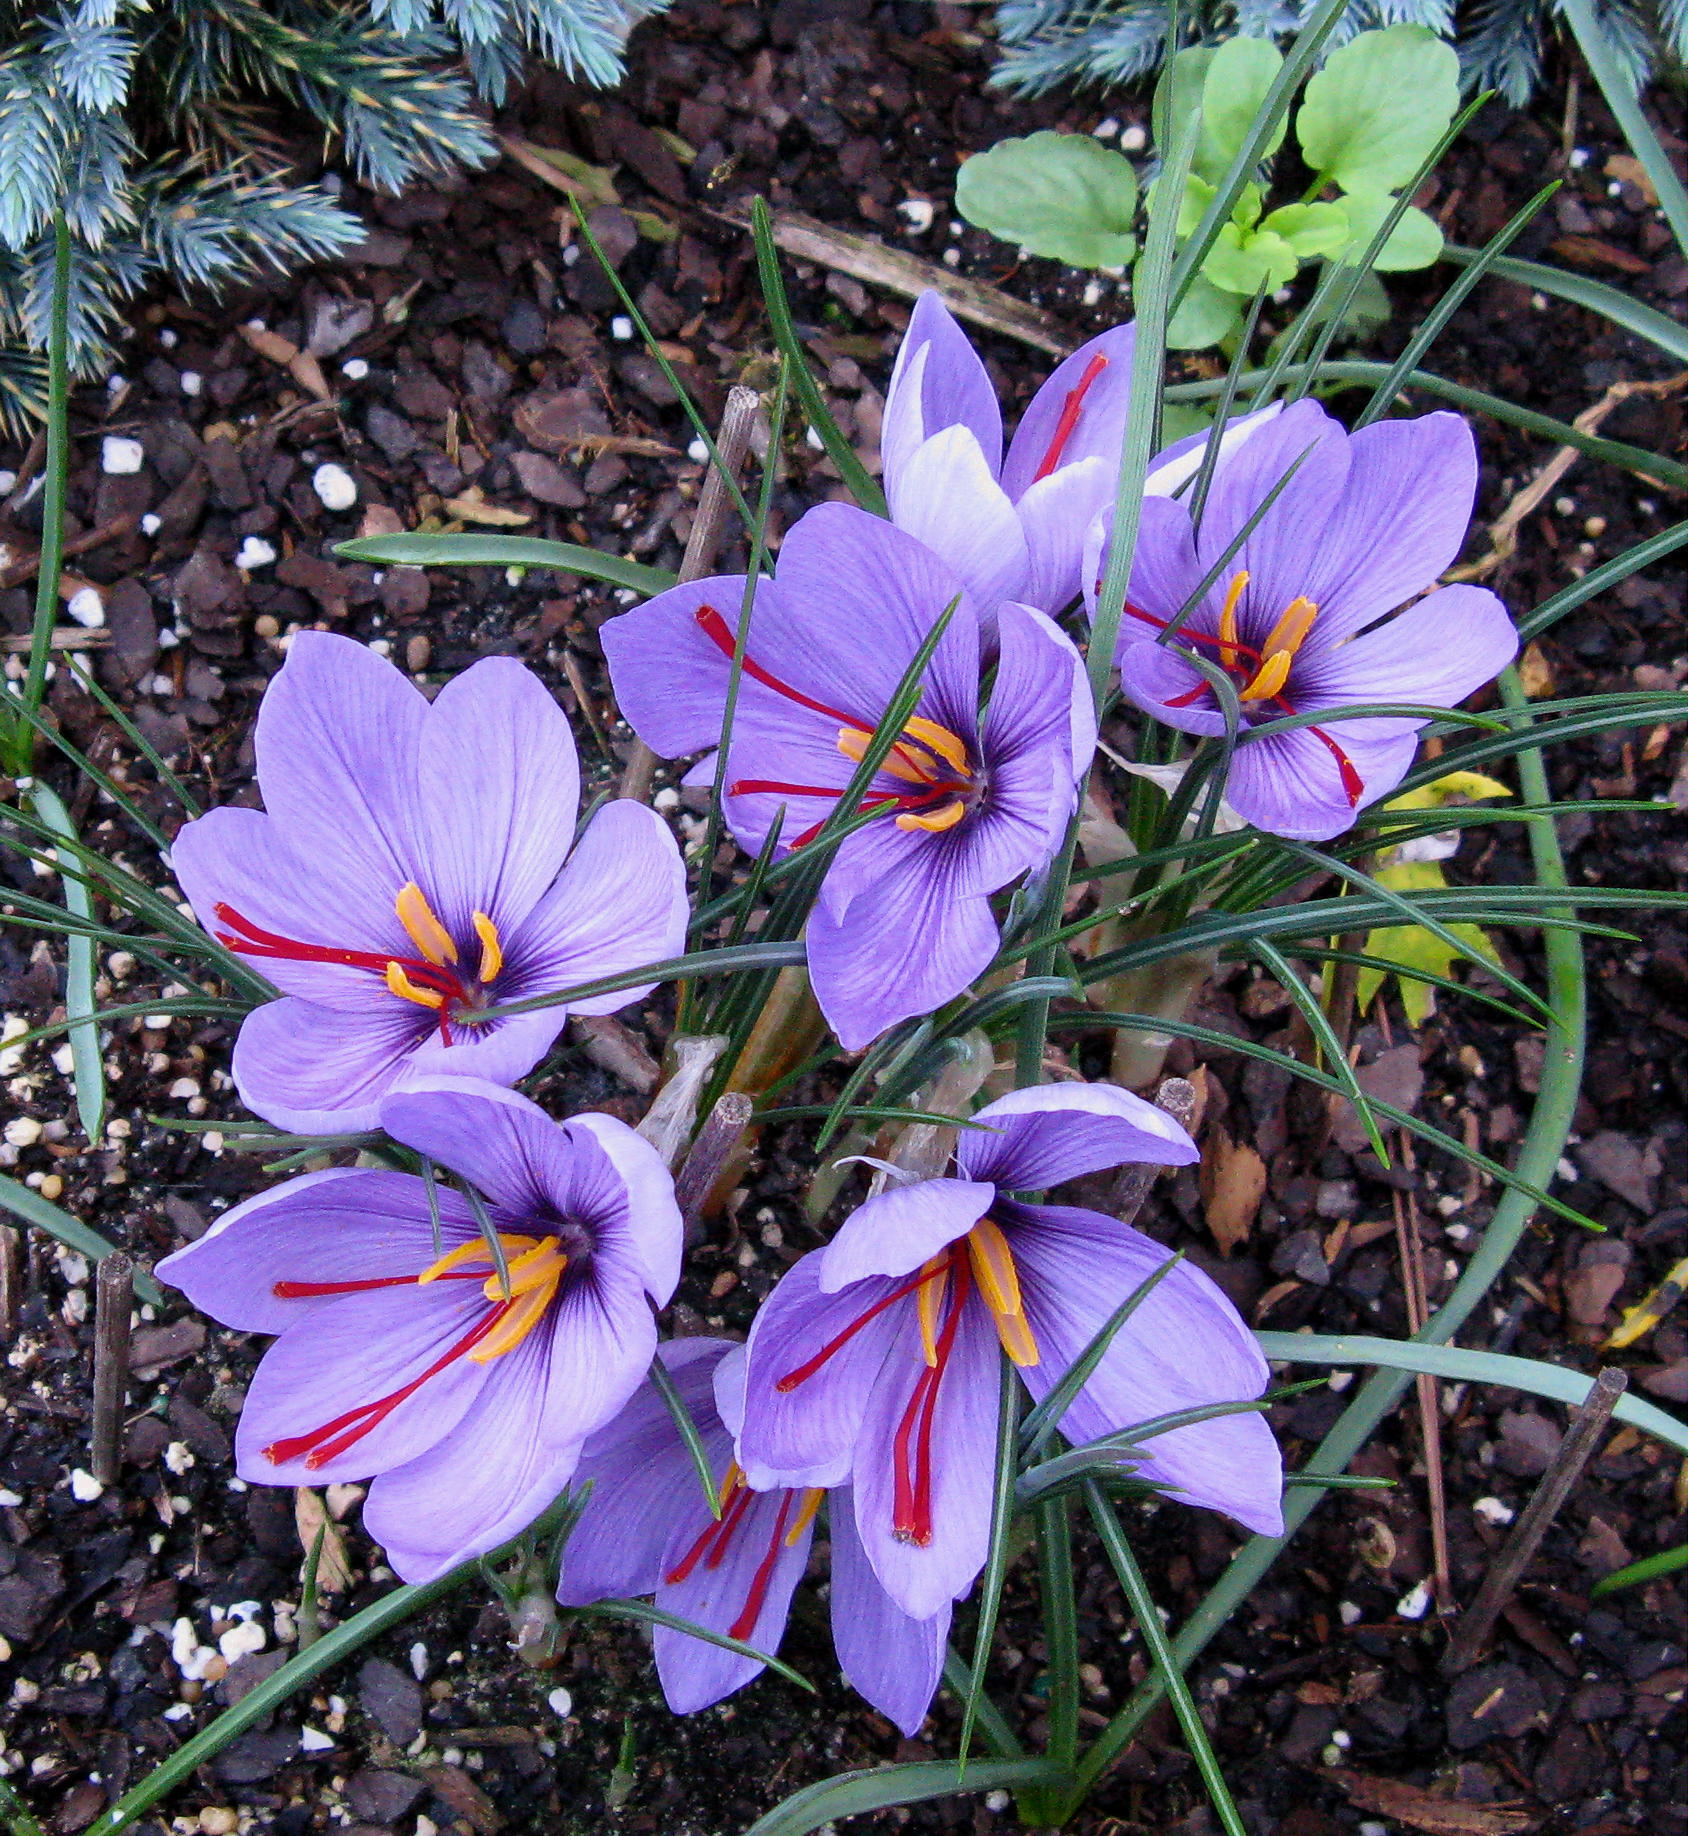 saffron flower - What could be a better way to start fall?